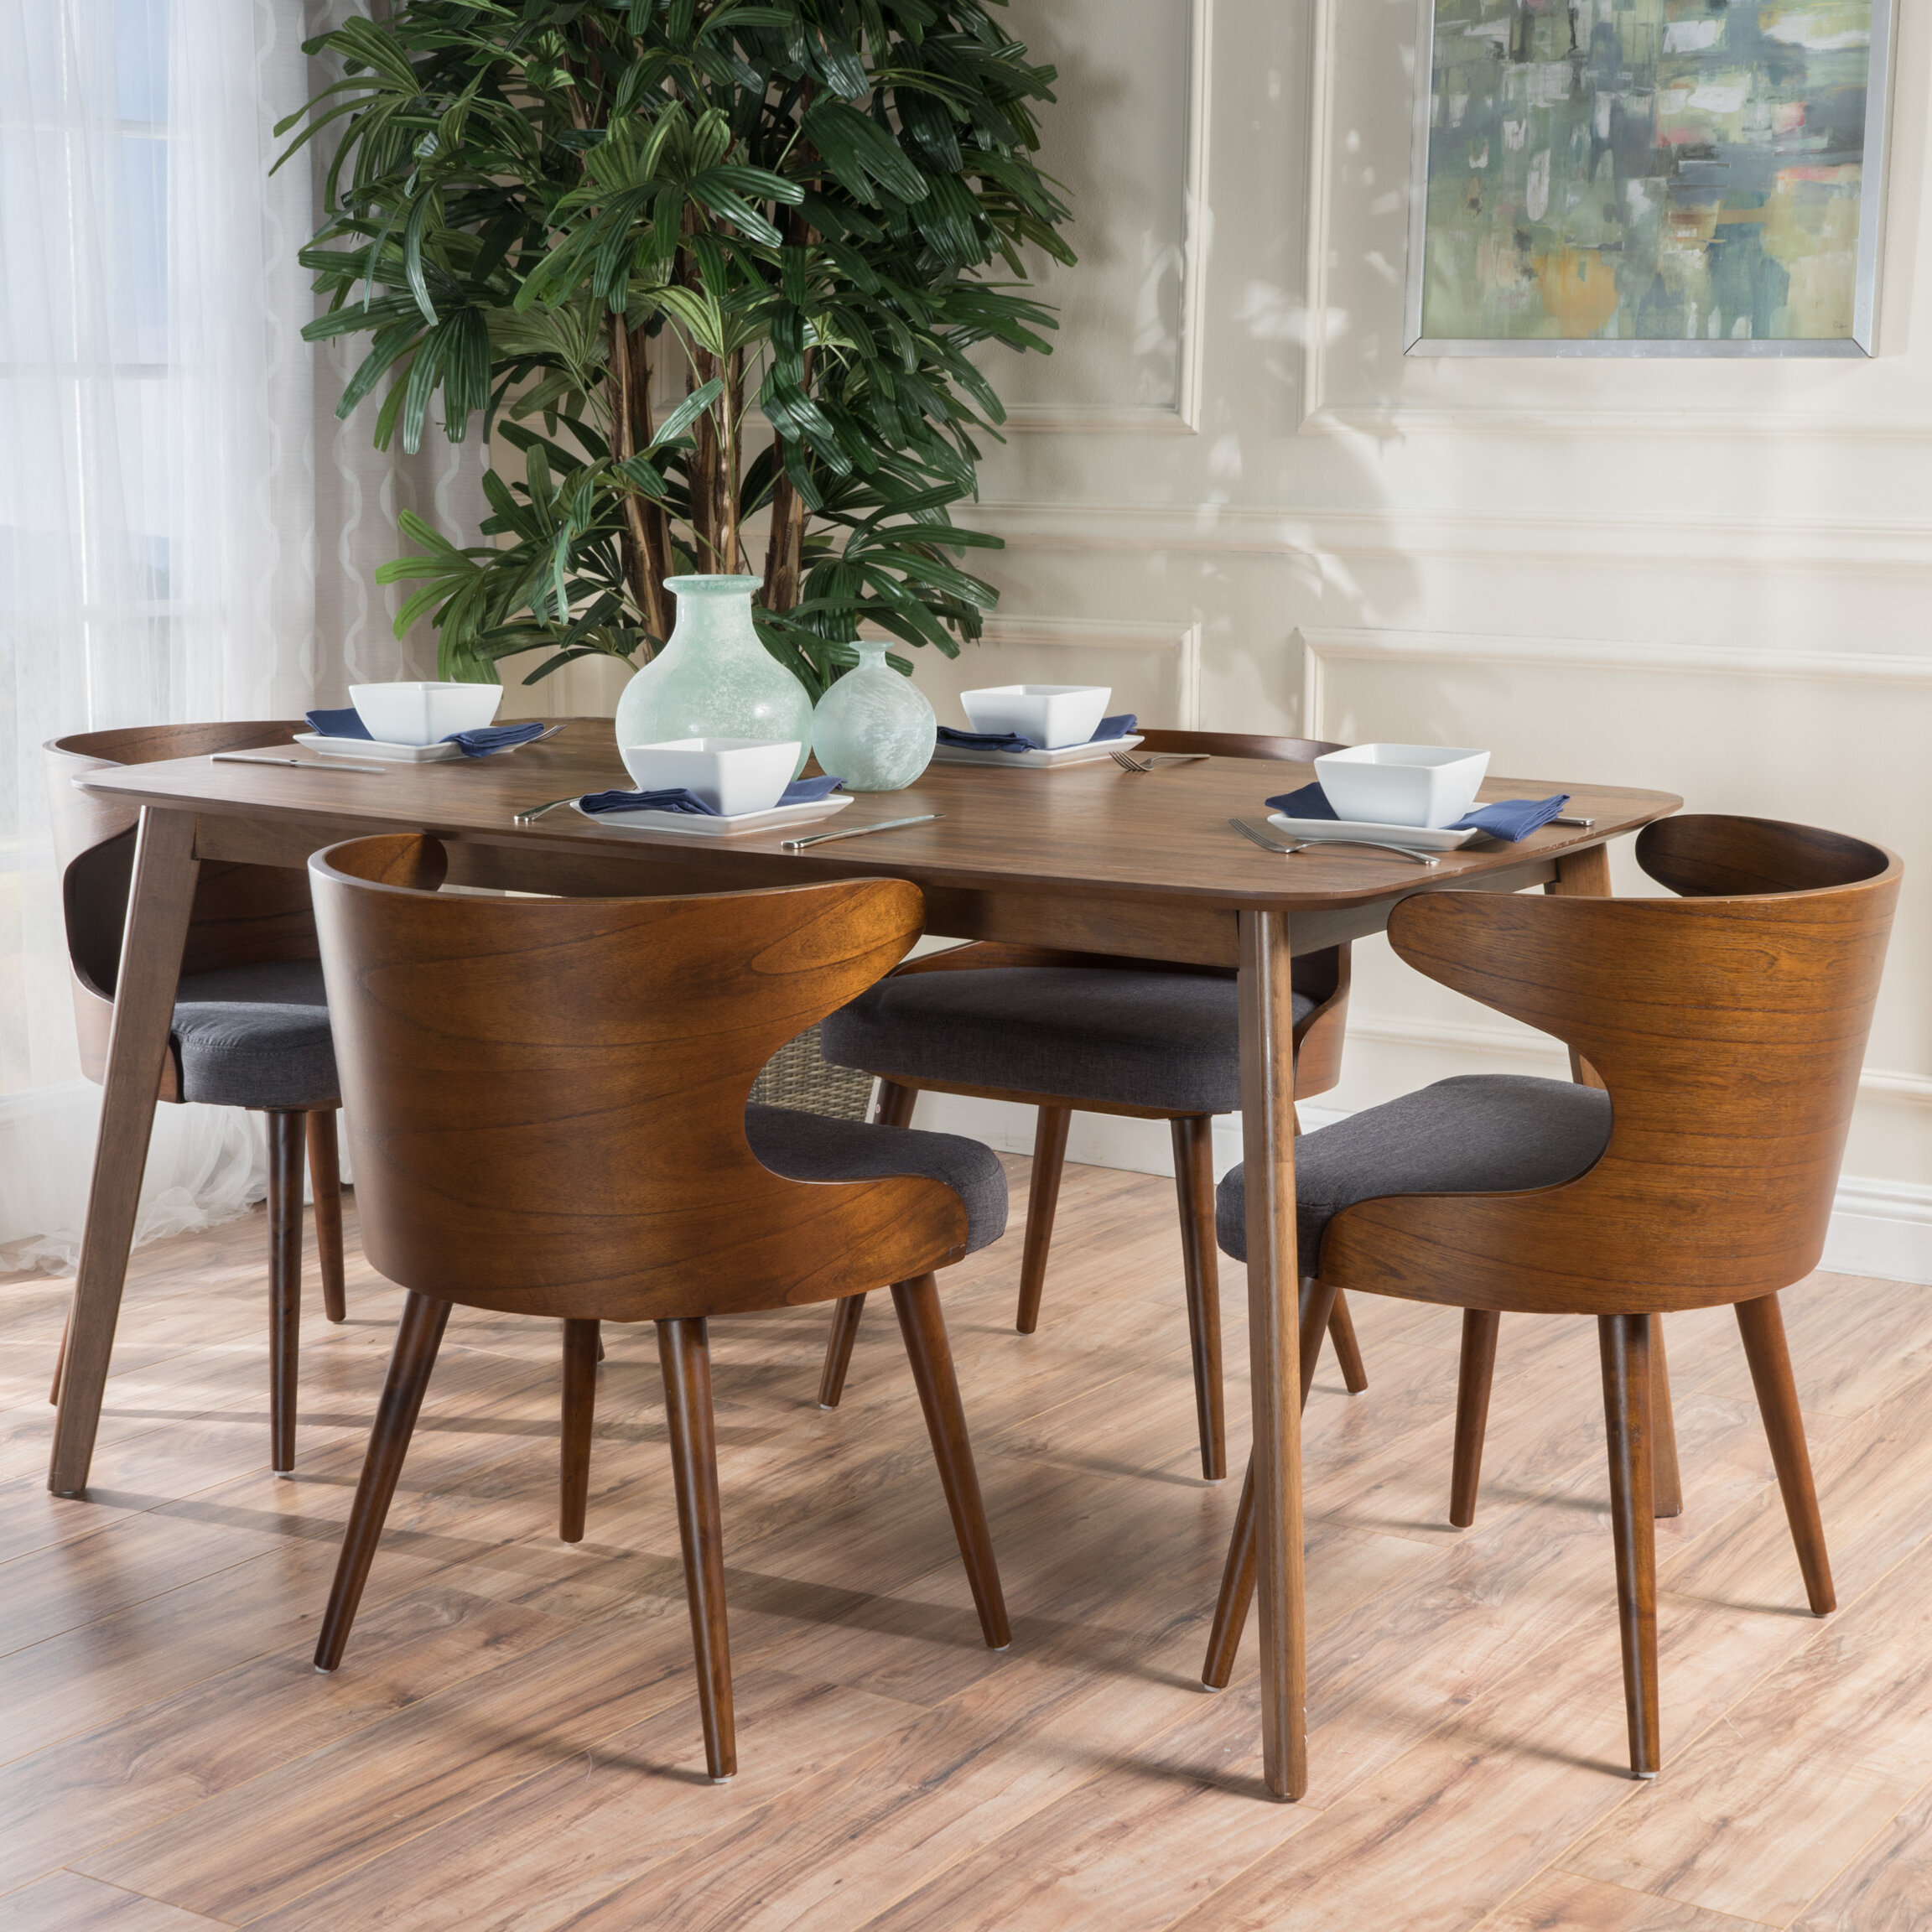 Marvelous Langley Street Camille 5 Piece Walnut Mid Century Dining Set U0026 Reviews |  Wayfair Design Inspirations